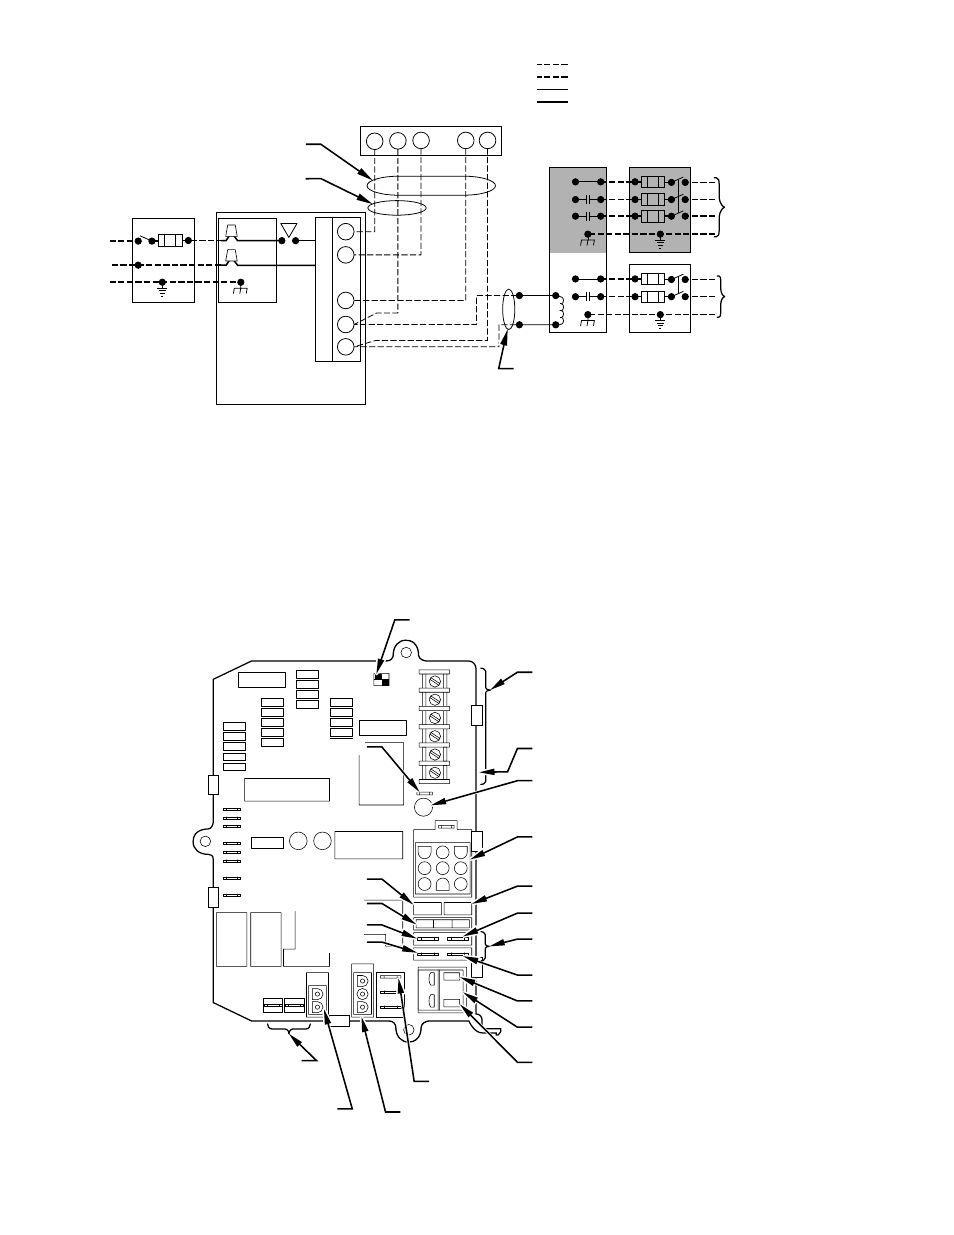 Bryant 395cav User Manual Page 10 20 230 Volt Wiring Diagram